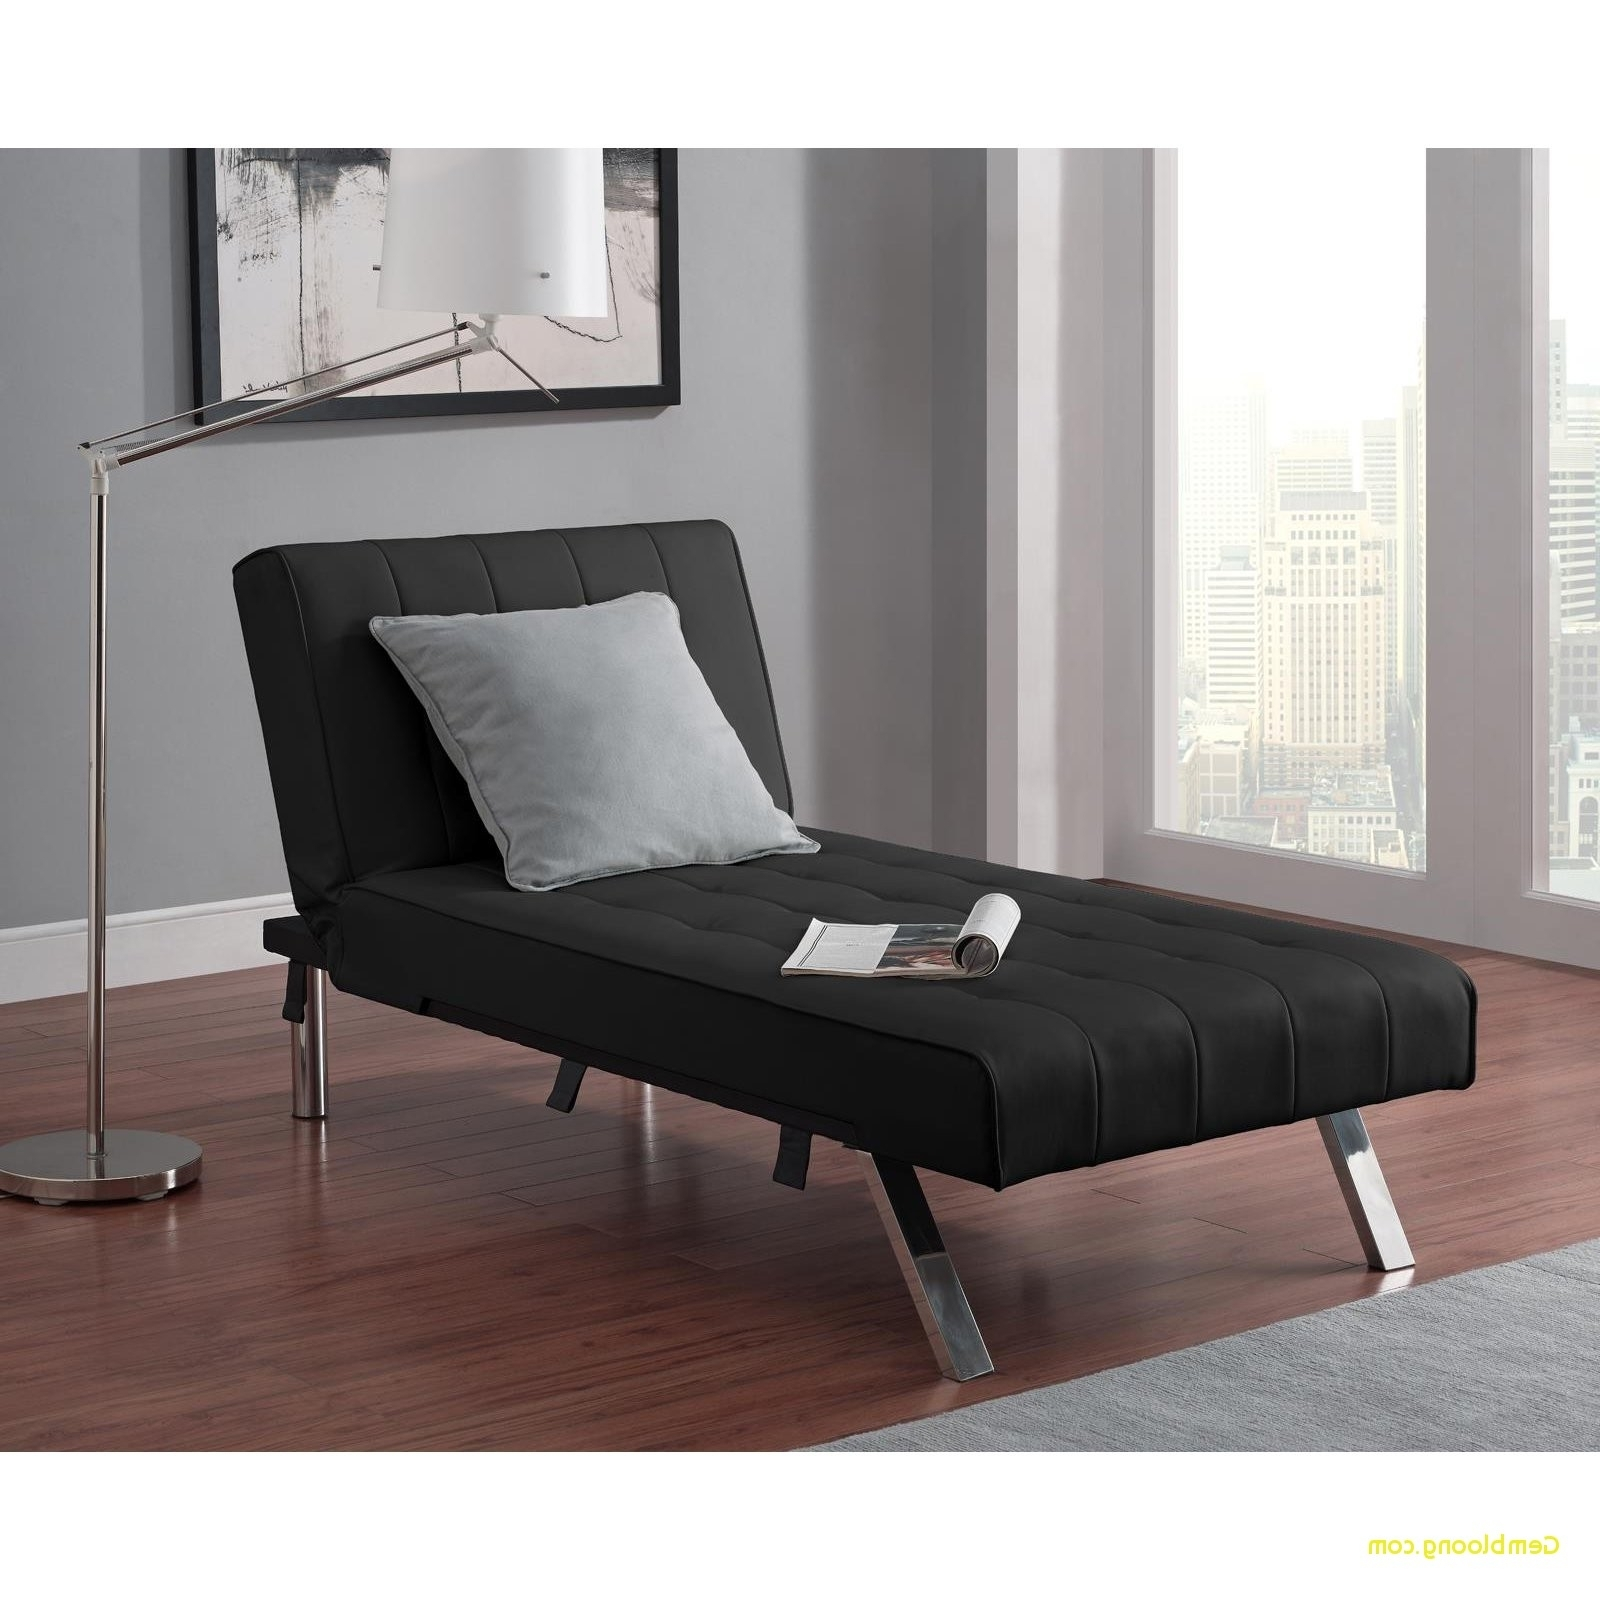 Chaise Lounge Under $200 New Ink Ivy Clark Lounge – Home Interior Pertaining To Newest Chaise Lounge Chairs Under $ (View 7 of 15)